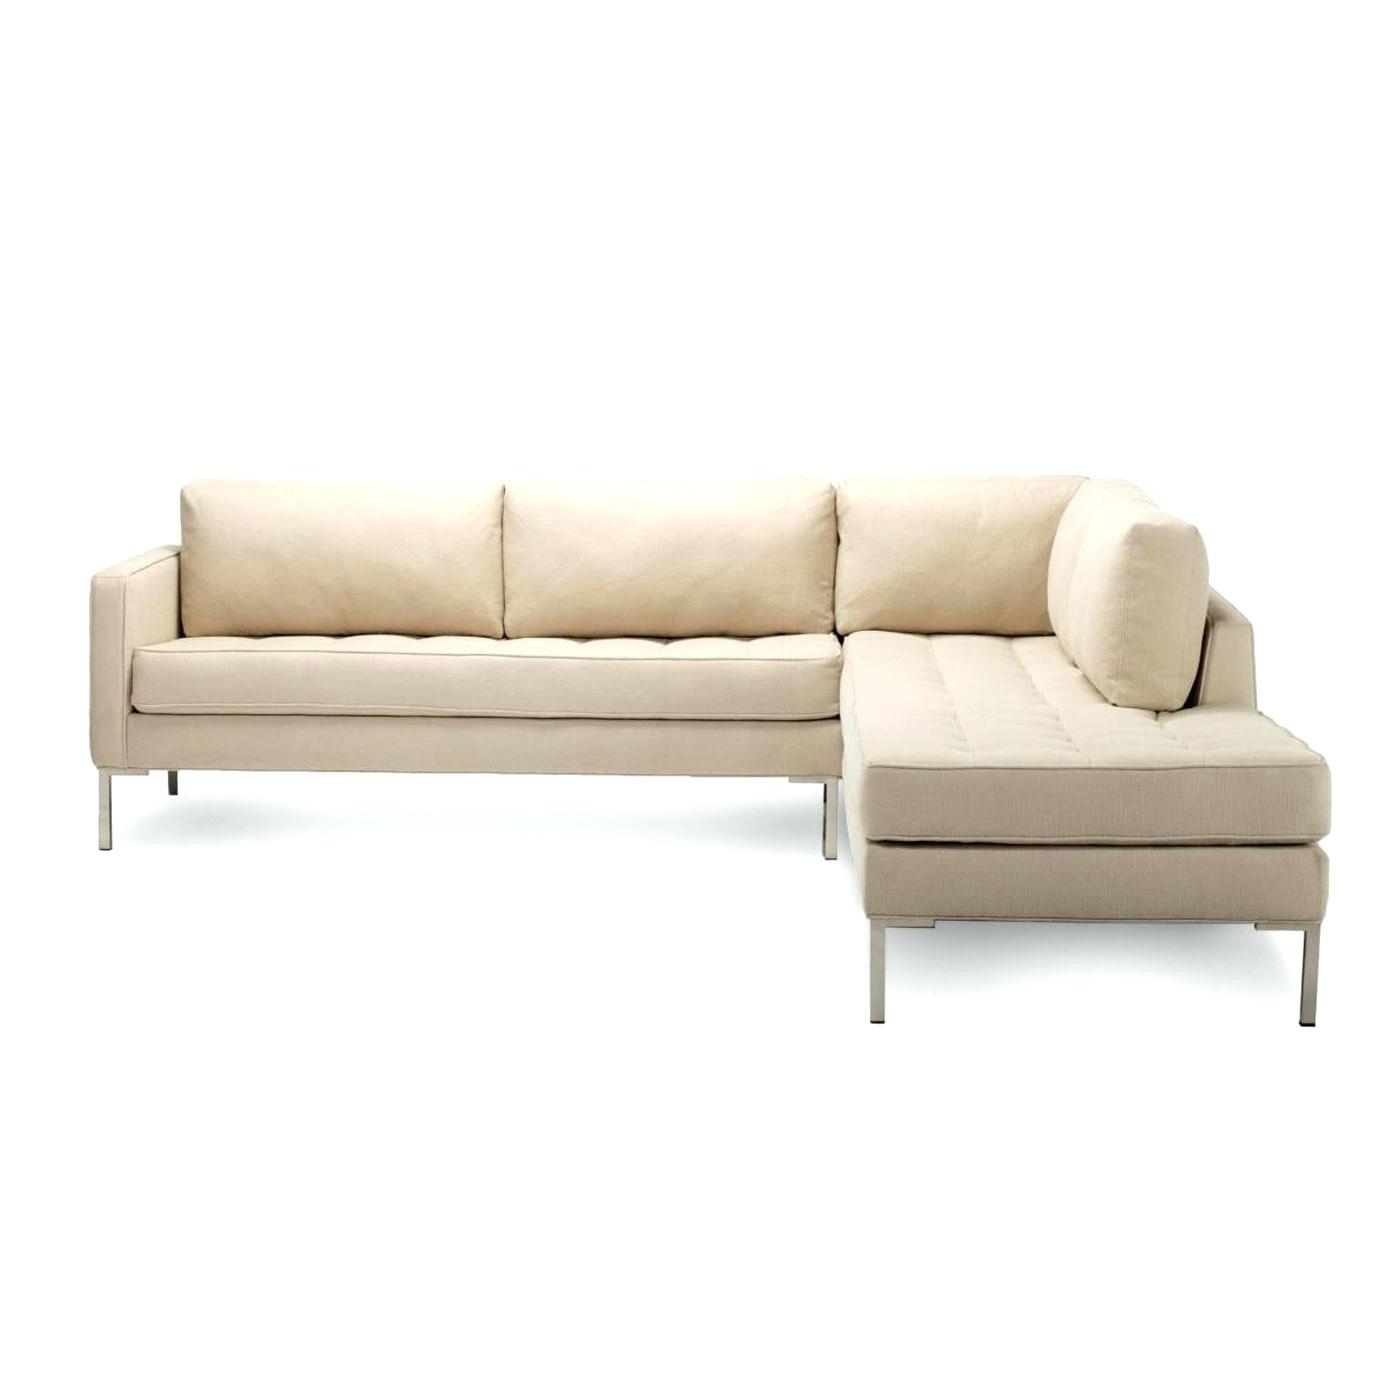 10 Best Ideas Contemporary Sectional Sofas